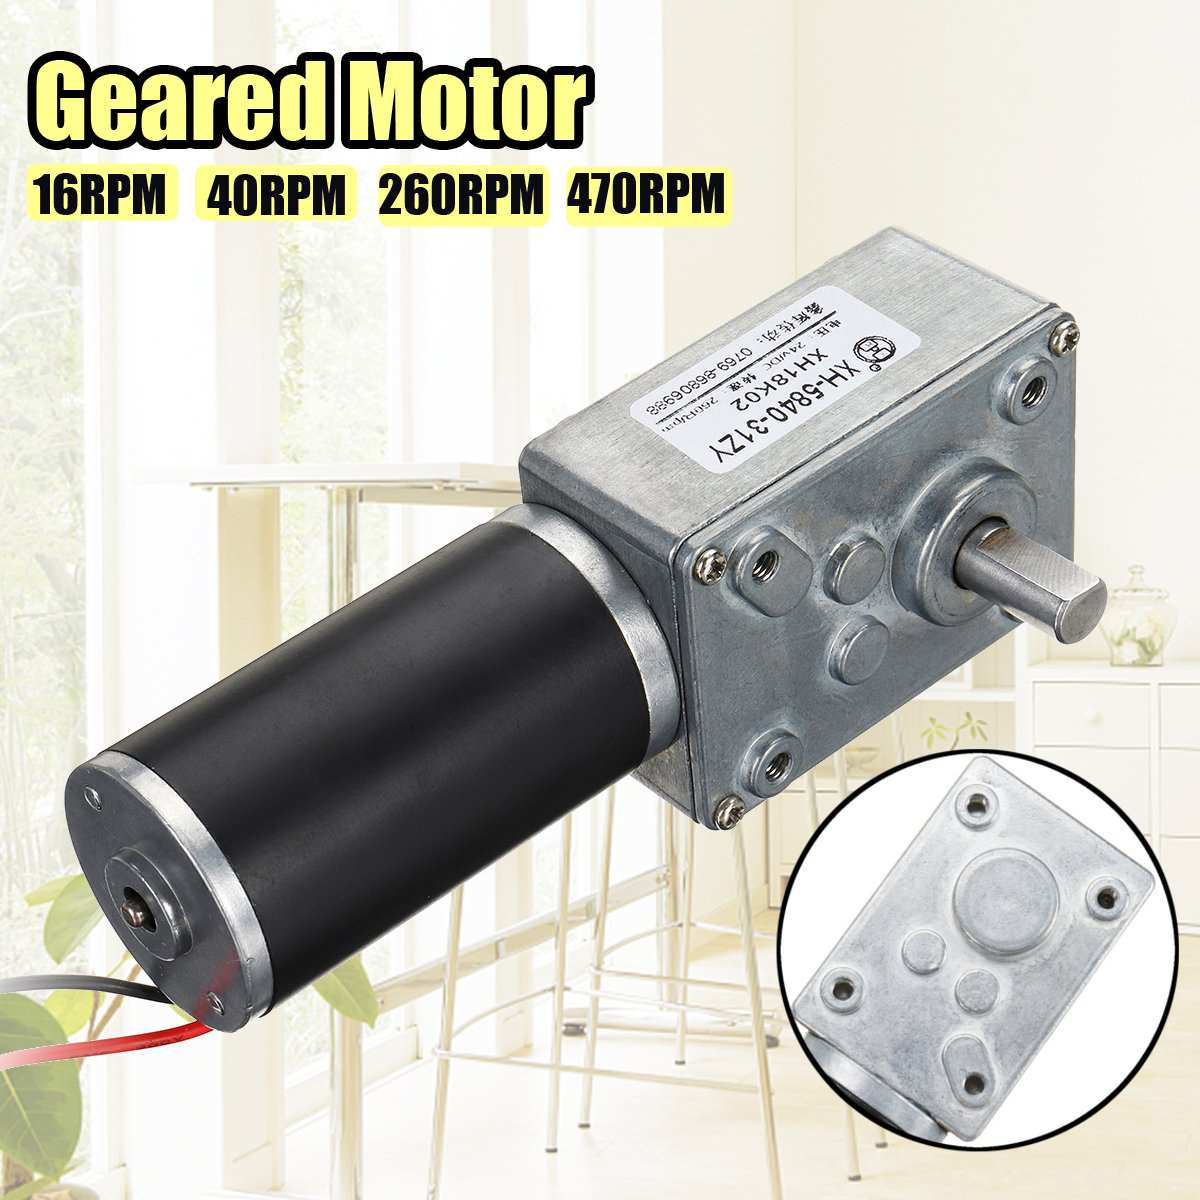 <font><b>DC</b></font> 24V Gear Reduction <font><b>Motor</b></font> Turbo Geared <font><b>Motor</b></font> 16/40/260/470RPM Mini Electric Gearbox Reducer For Intelligent Curtain <font><b>Motor</b></font> image